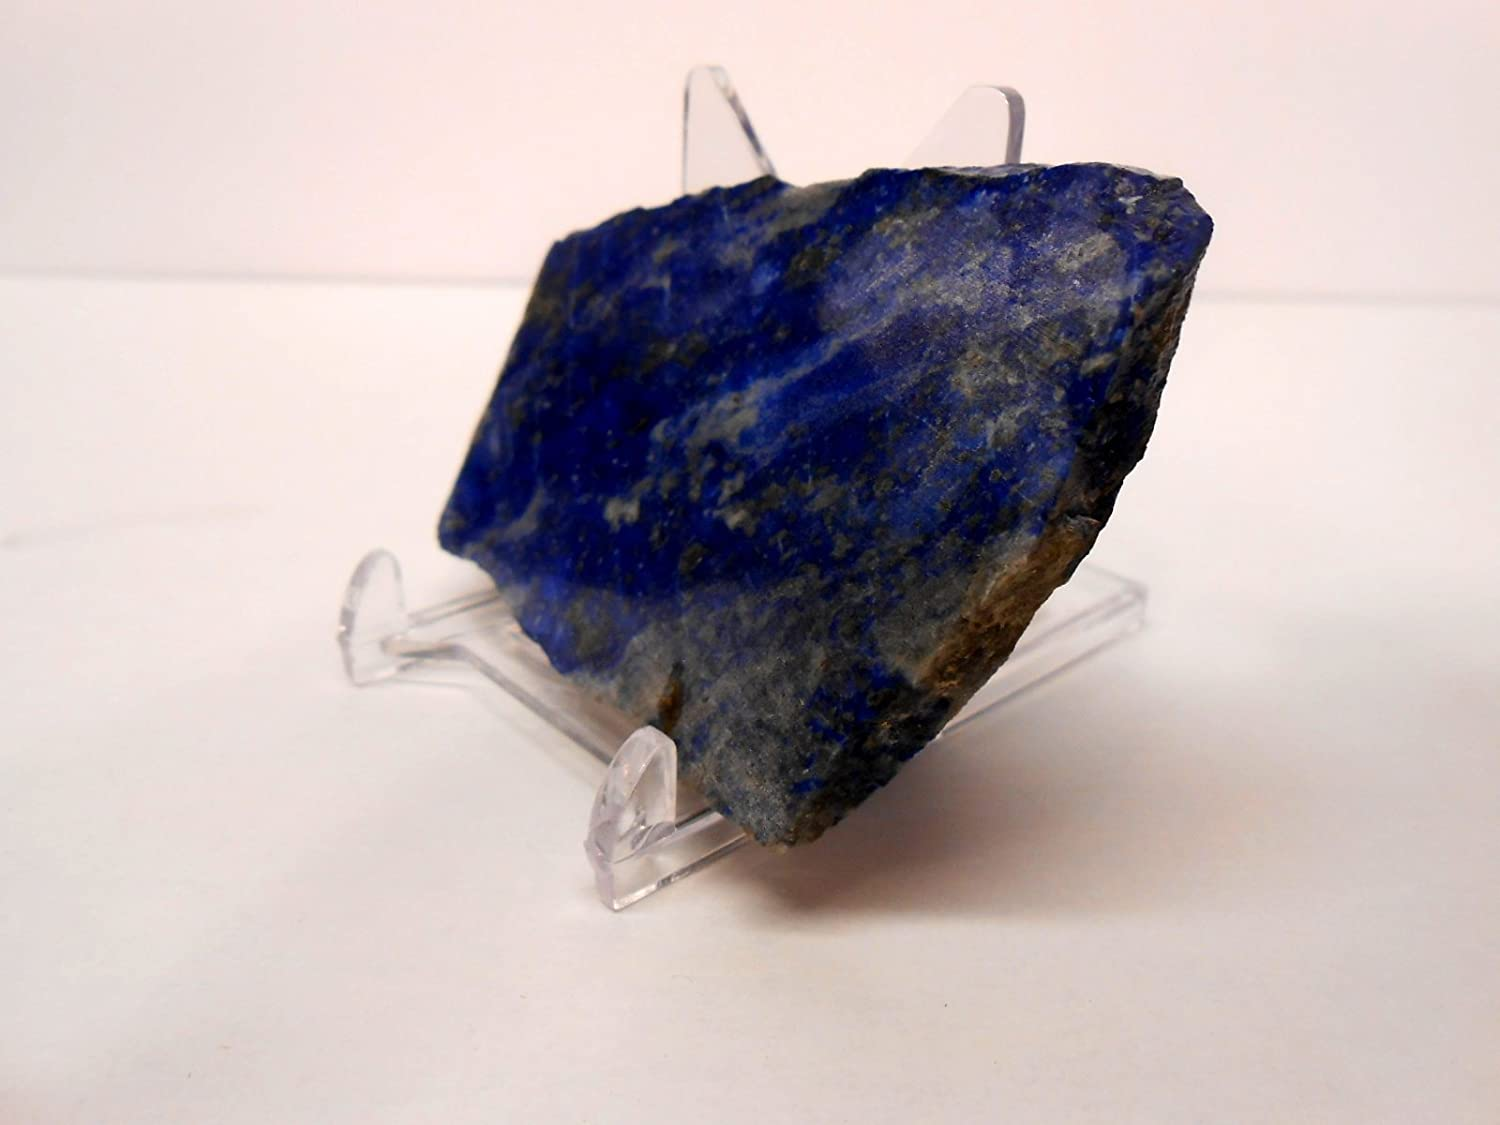 Dynamic 2 pc Acrylic Display Stand Geodes Rocks Slabs Fossils Relics Specimens 5ct by Acrylic Stands